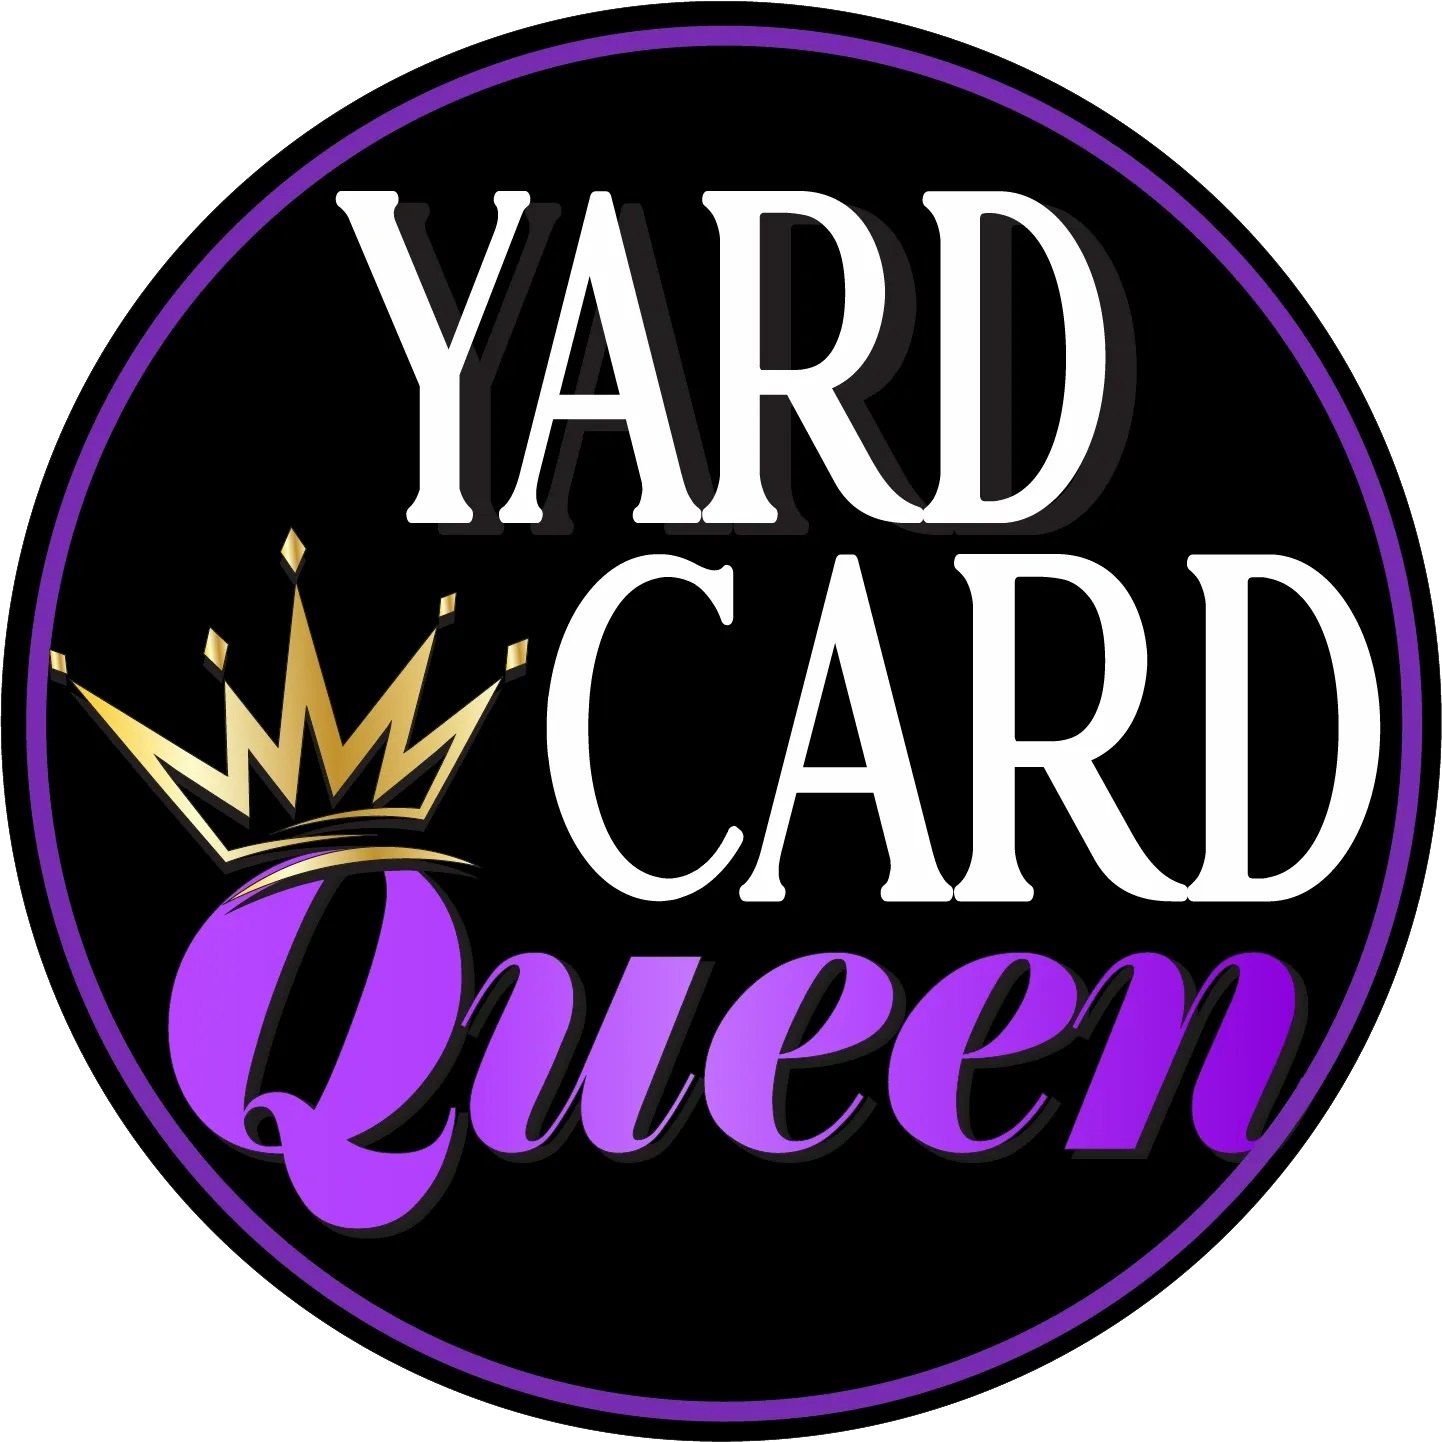 Yard Card Queen Sign Rental Company